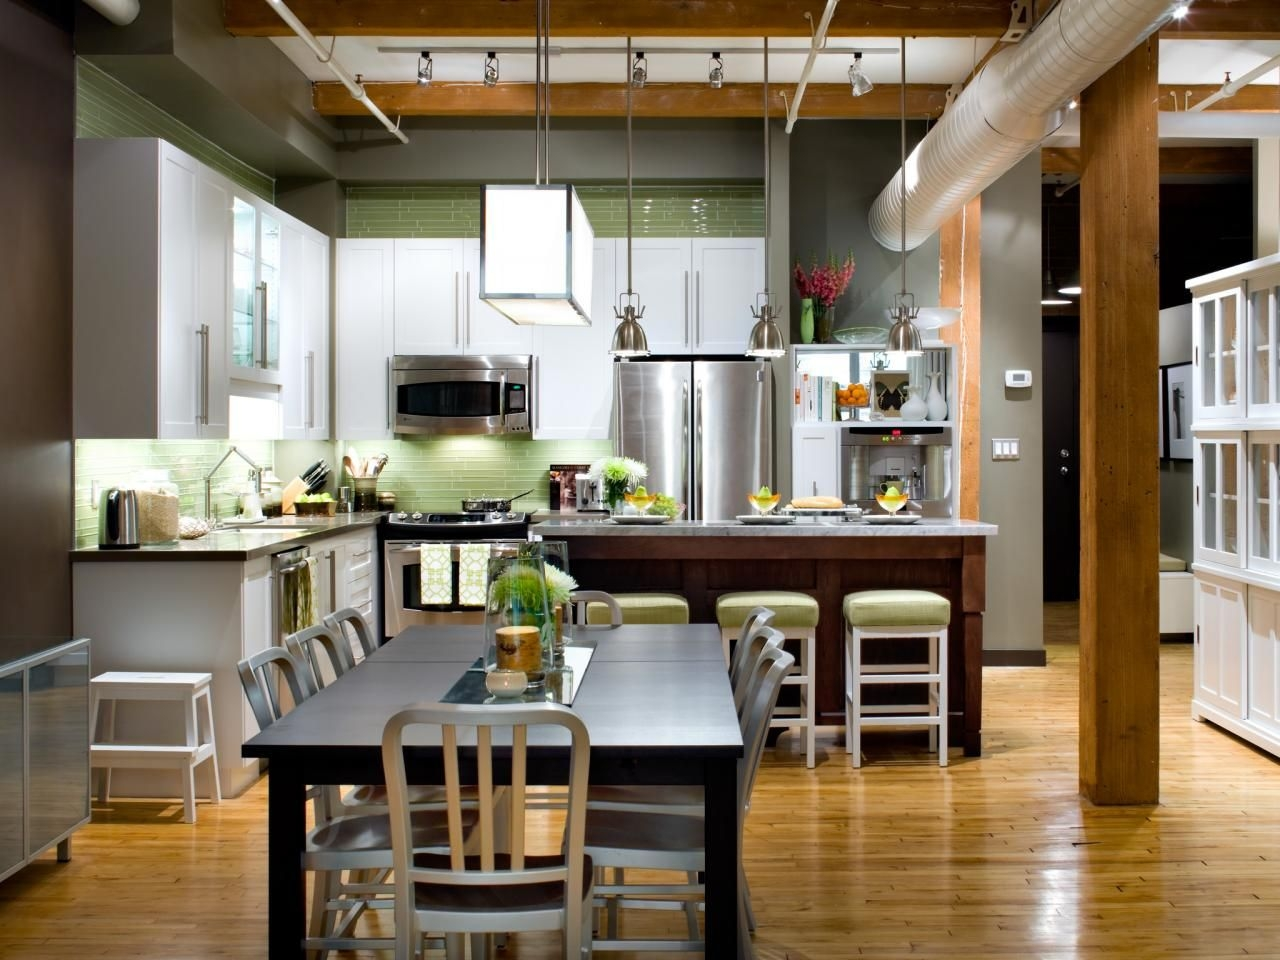 Lshaped Kitchen Design Pictures Ideas  Tips From Hgtv  Hgtv